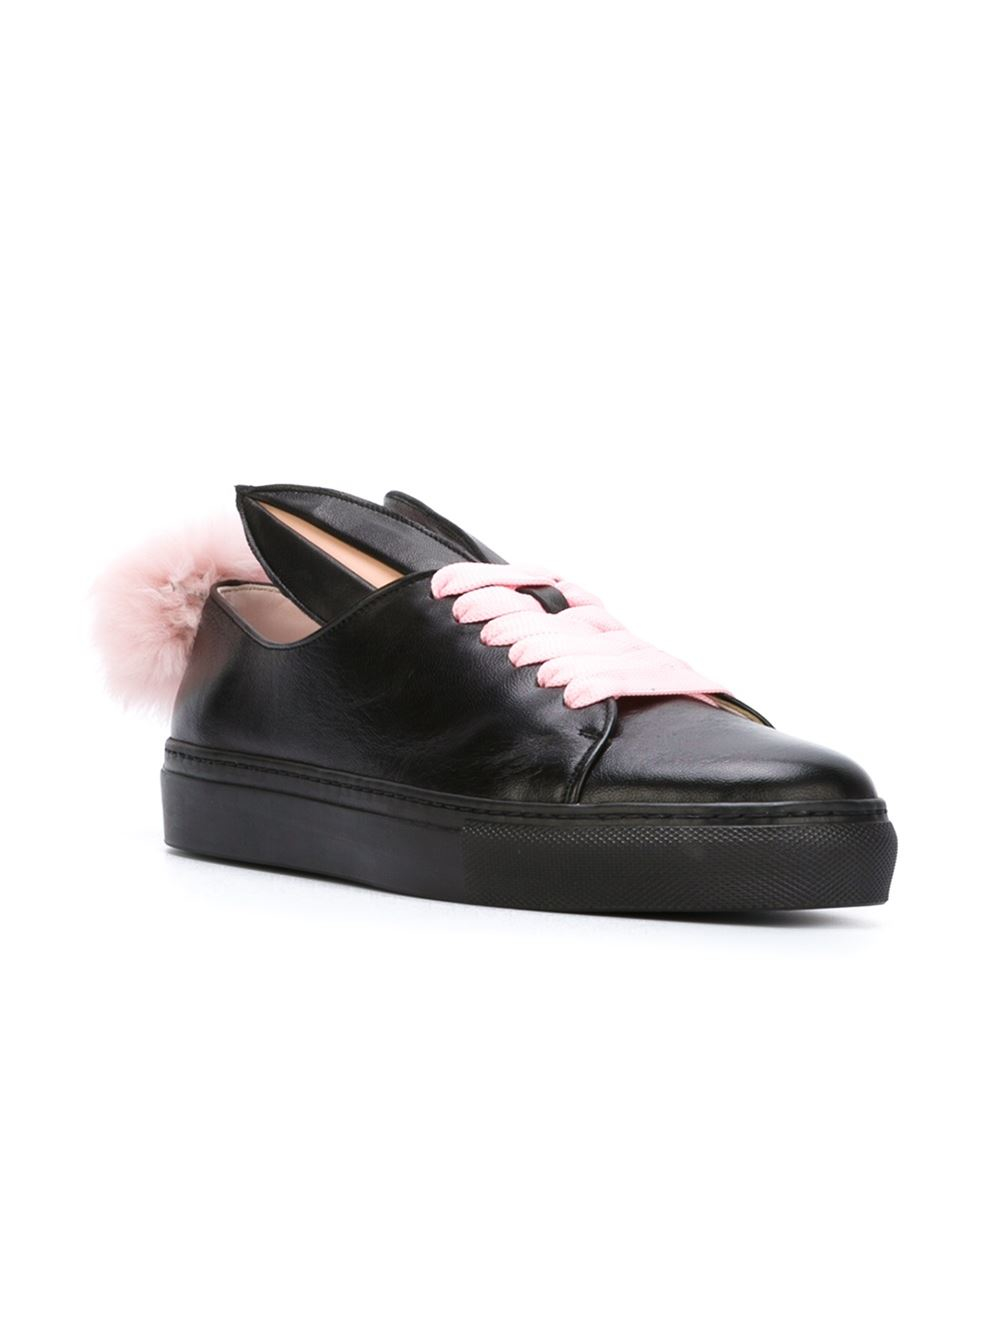 Tail sneakers - Black Minna Parikka kkOhCwM